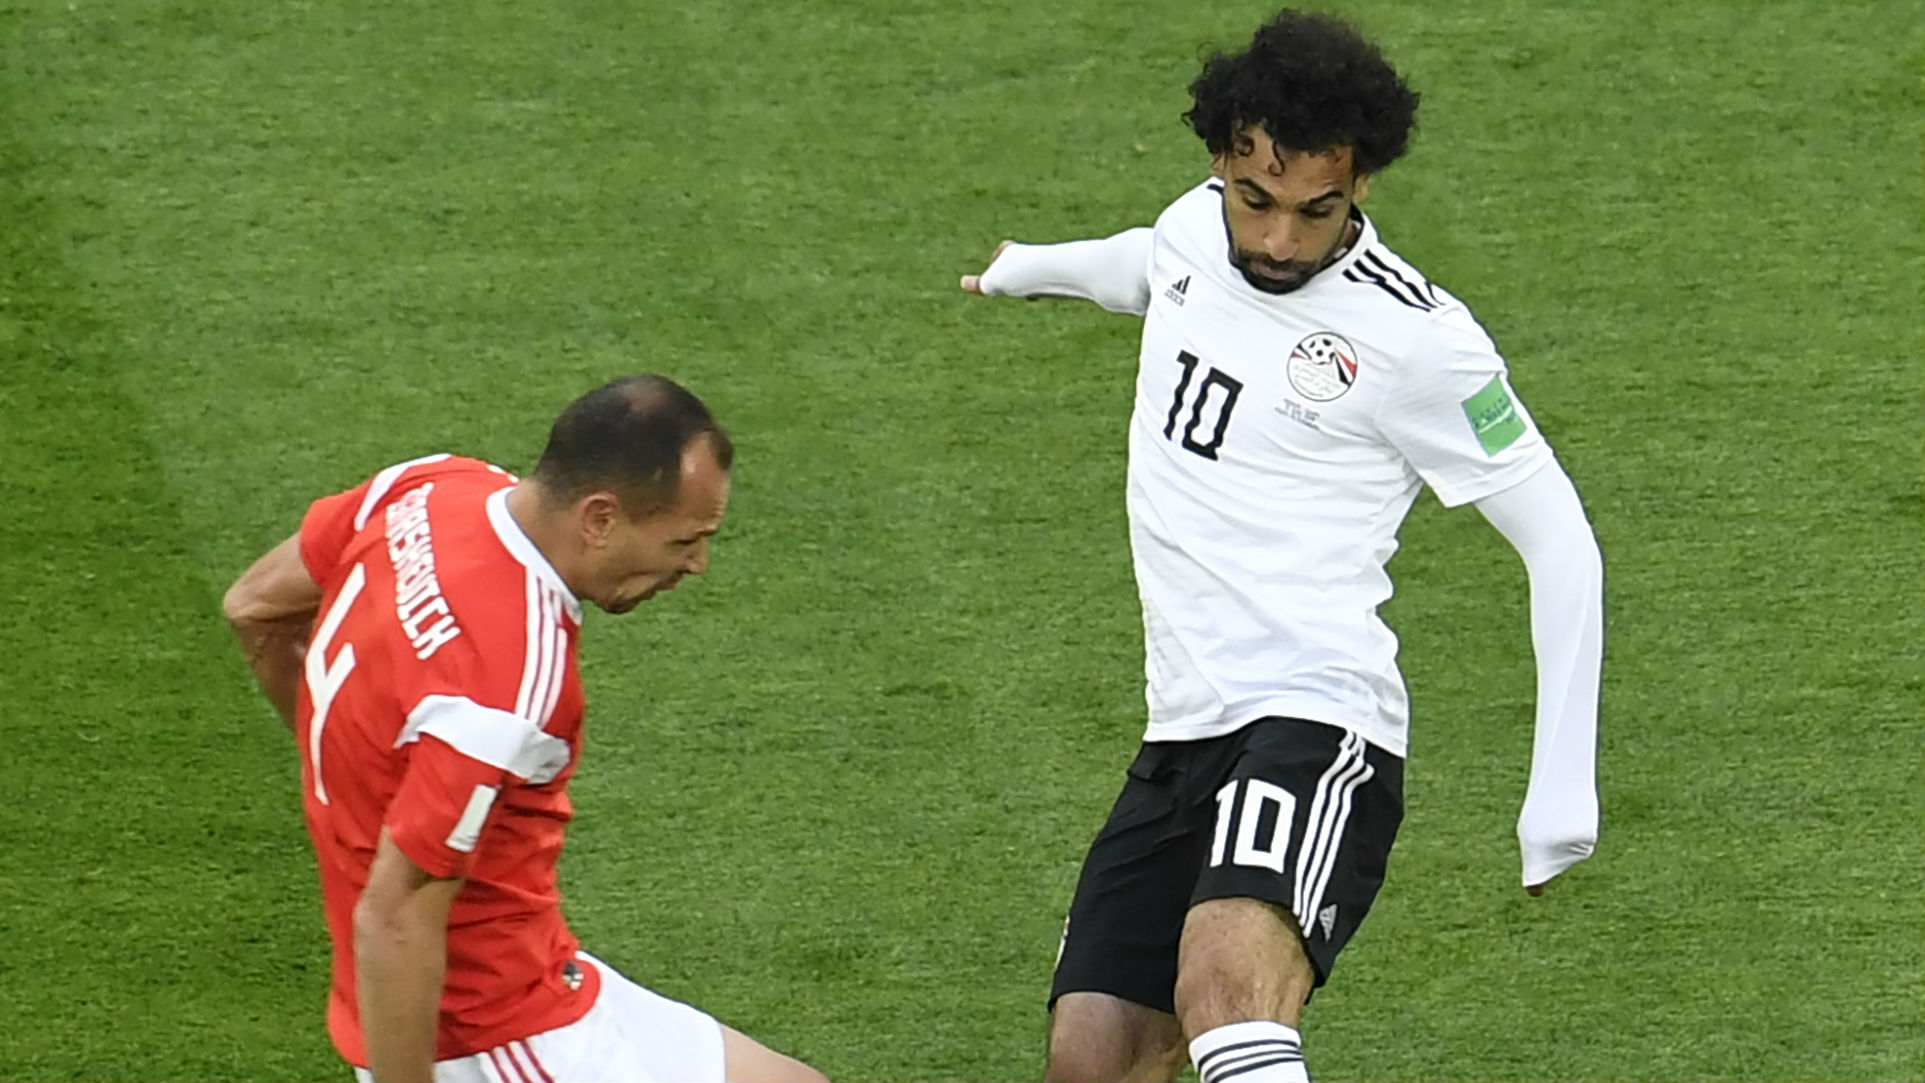 Sergey Ignashevich Russia Mohamed Salah Egypt World Cup